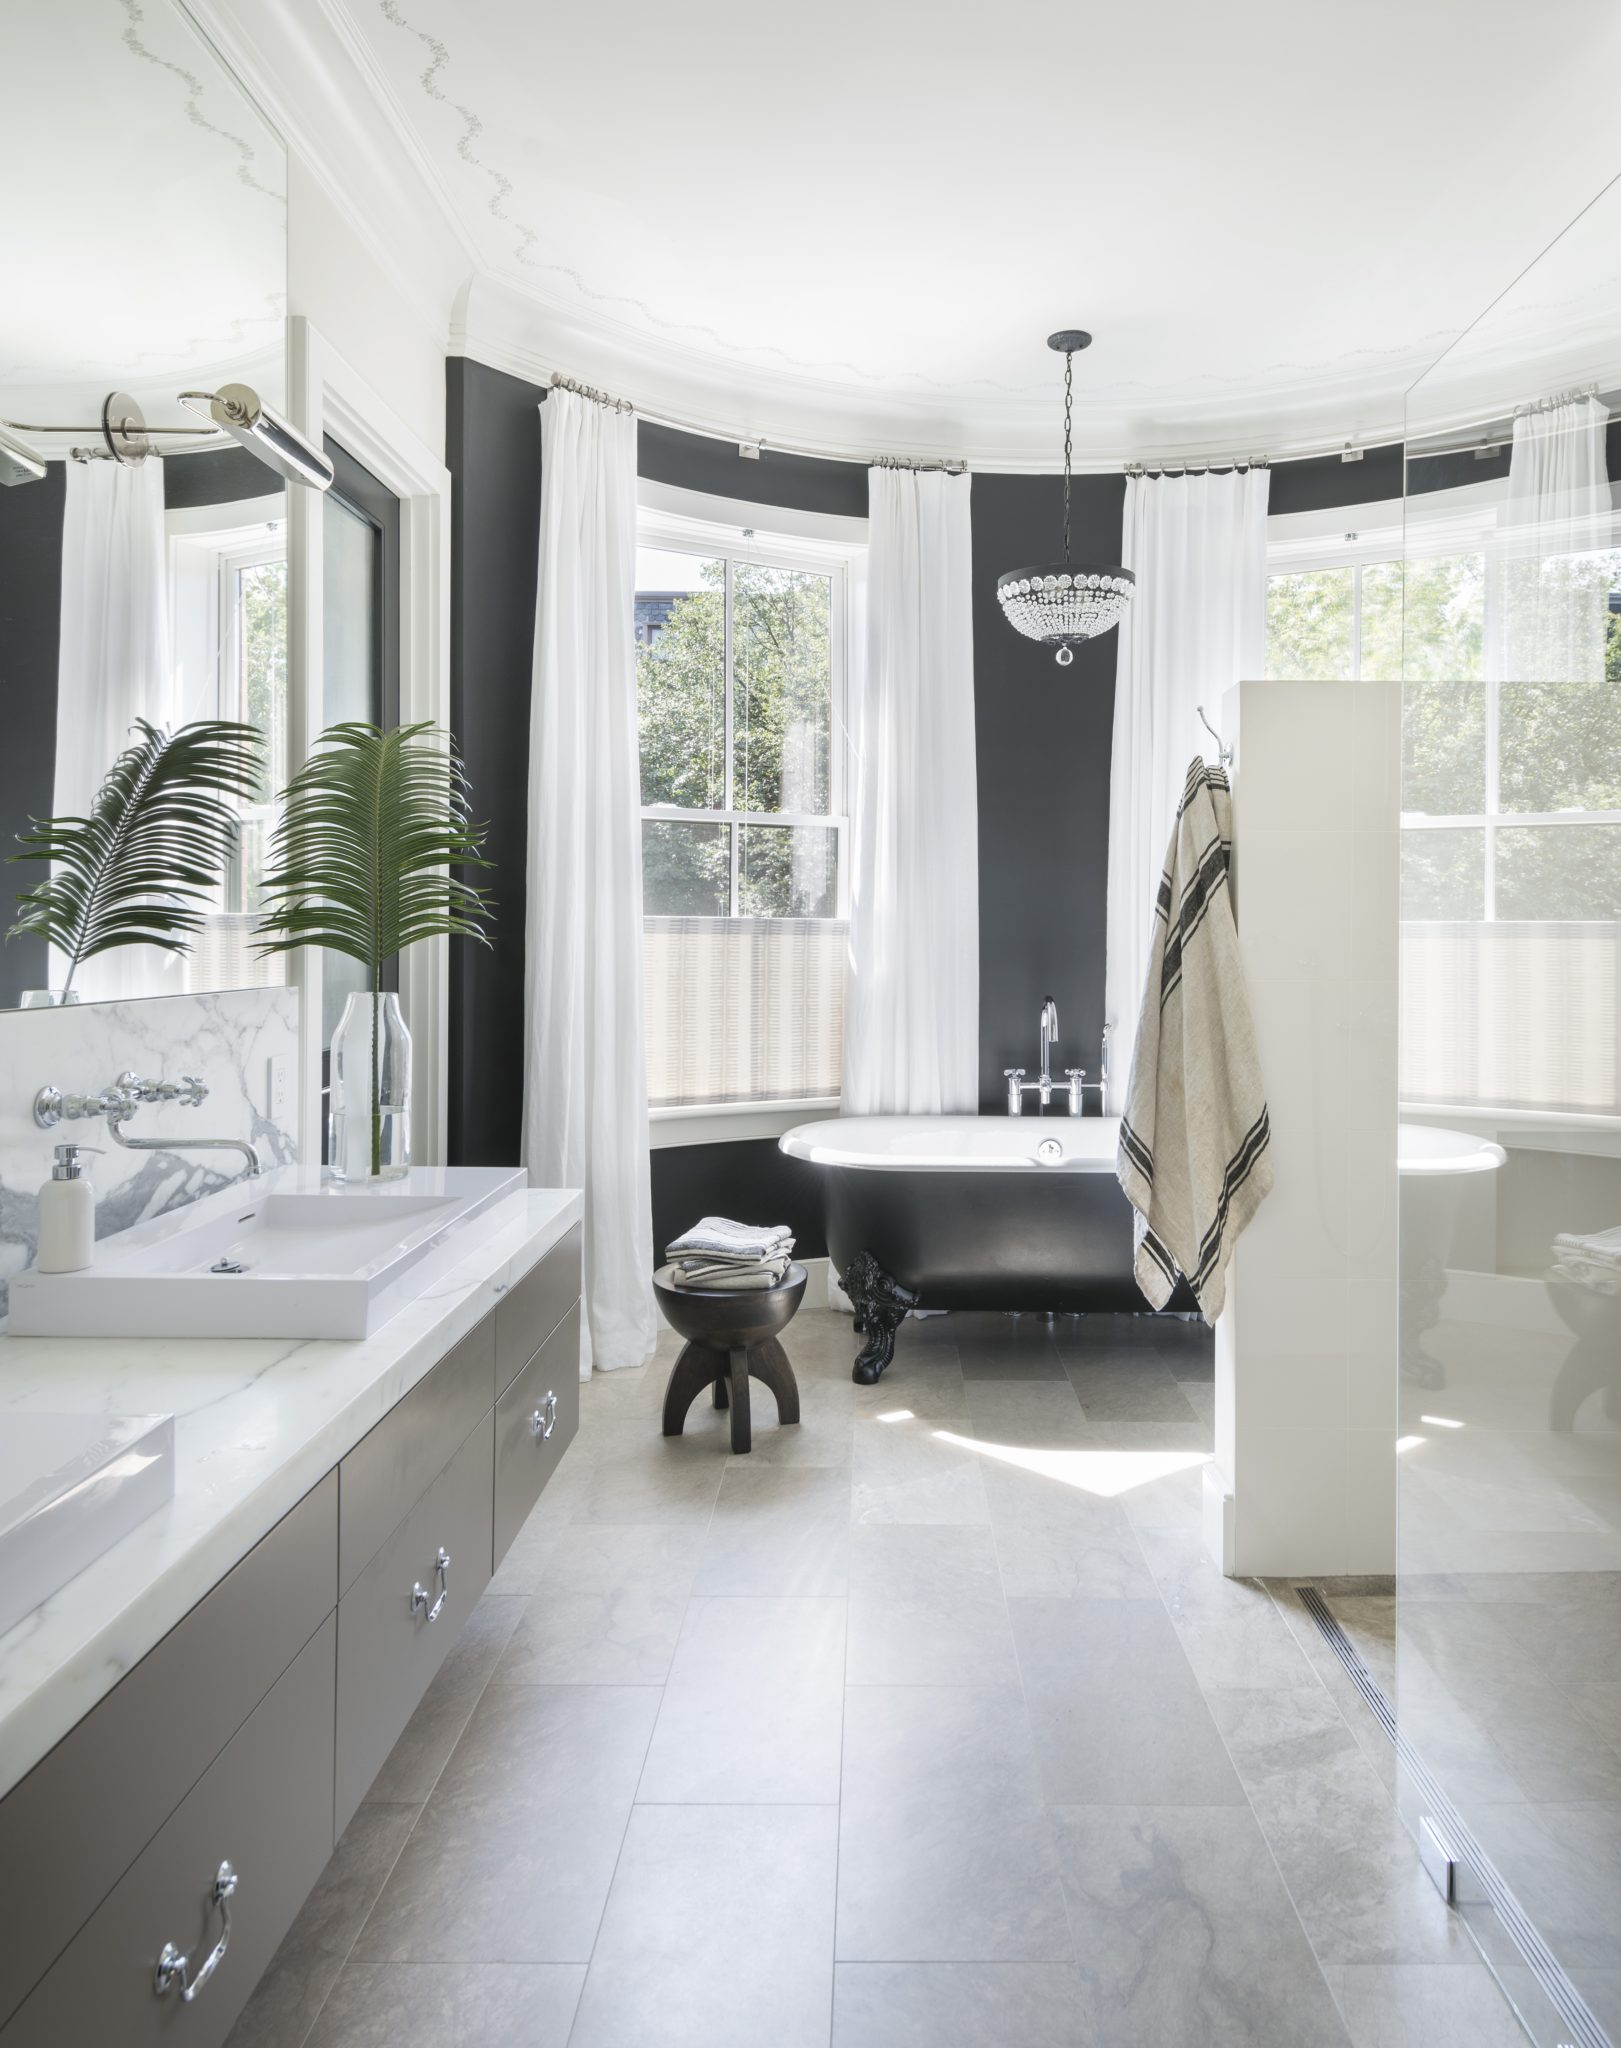 Urban townhouse master bath and dressing room by Koo de Kir Architectural Interiors